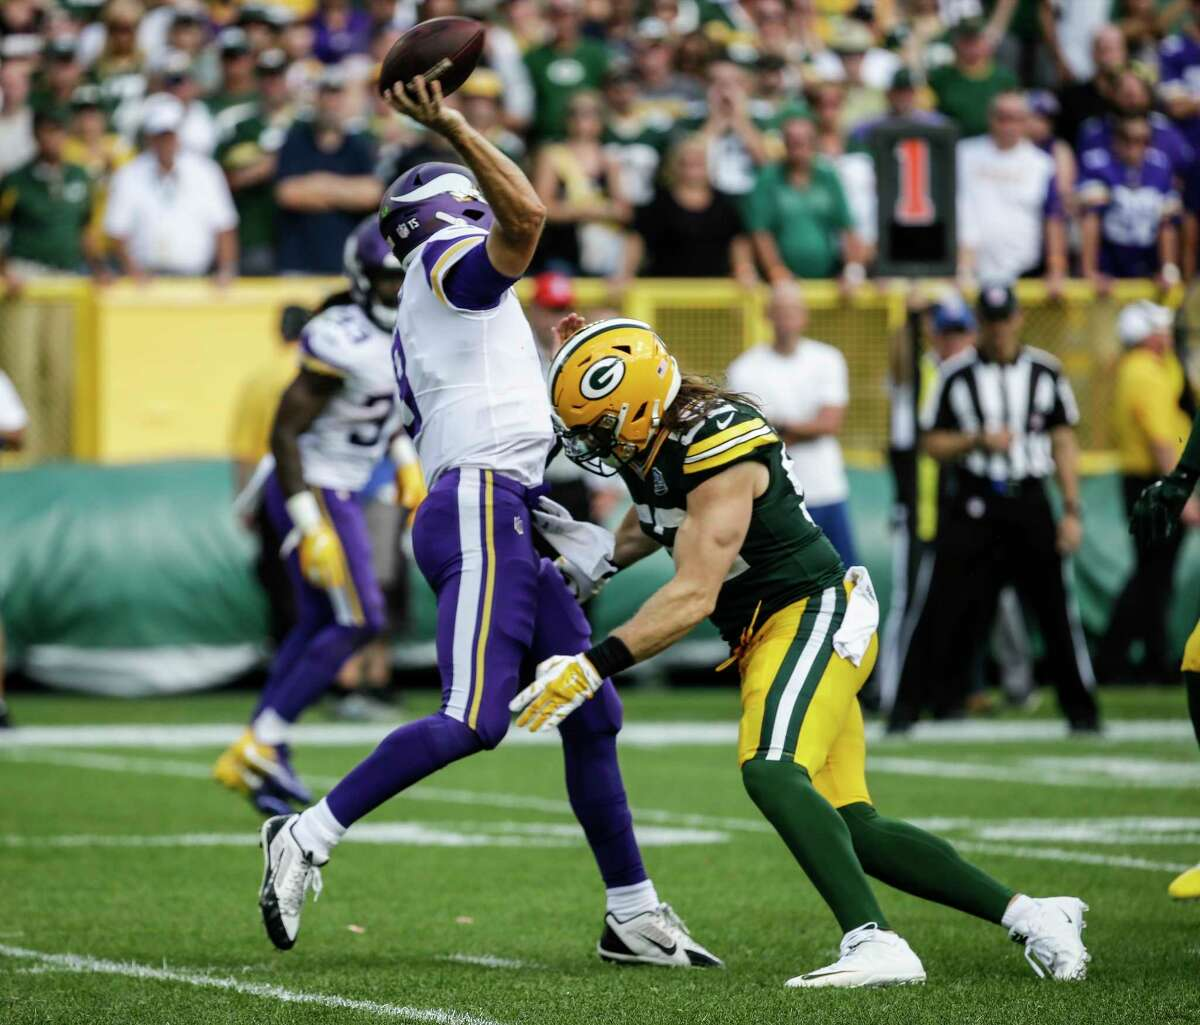 FILE - In this Sept. 16, 2018, file photo, Green Bay Packers?' Clay Matthews tackles Minnesota Vikings quarterback Kirk Cousins during the second half of an NFL football game, in Green Bay, Wis. Matthews was penalized for roughing the passer on the play. The NFL is getting roughed up over its amplified enforcement of roughing the passer penalties that has produced head-scratching, game-changing calls and a season-ending injury to a defender trying to comply with the league?'s mandate not to land on the quarterback. What constitutes a clean hit anymore is anyone's guess. (AP Photo/Mike Roemer, File)